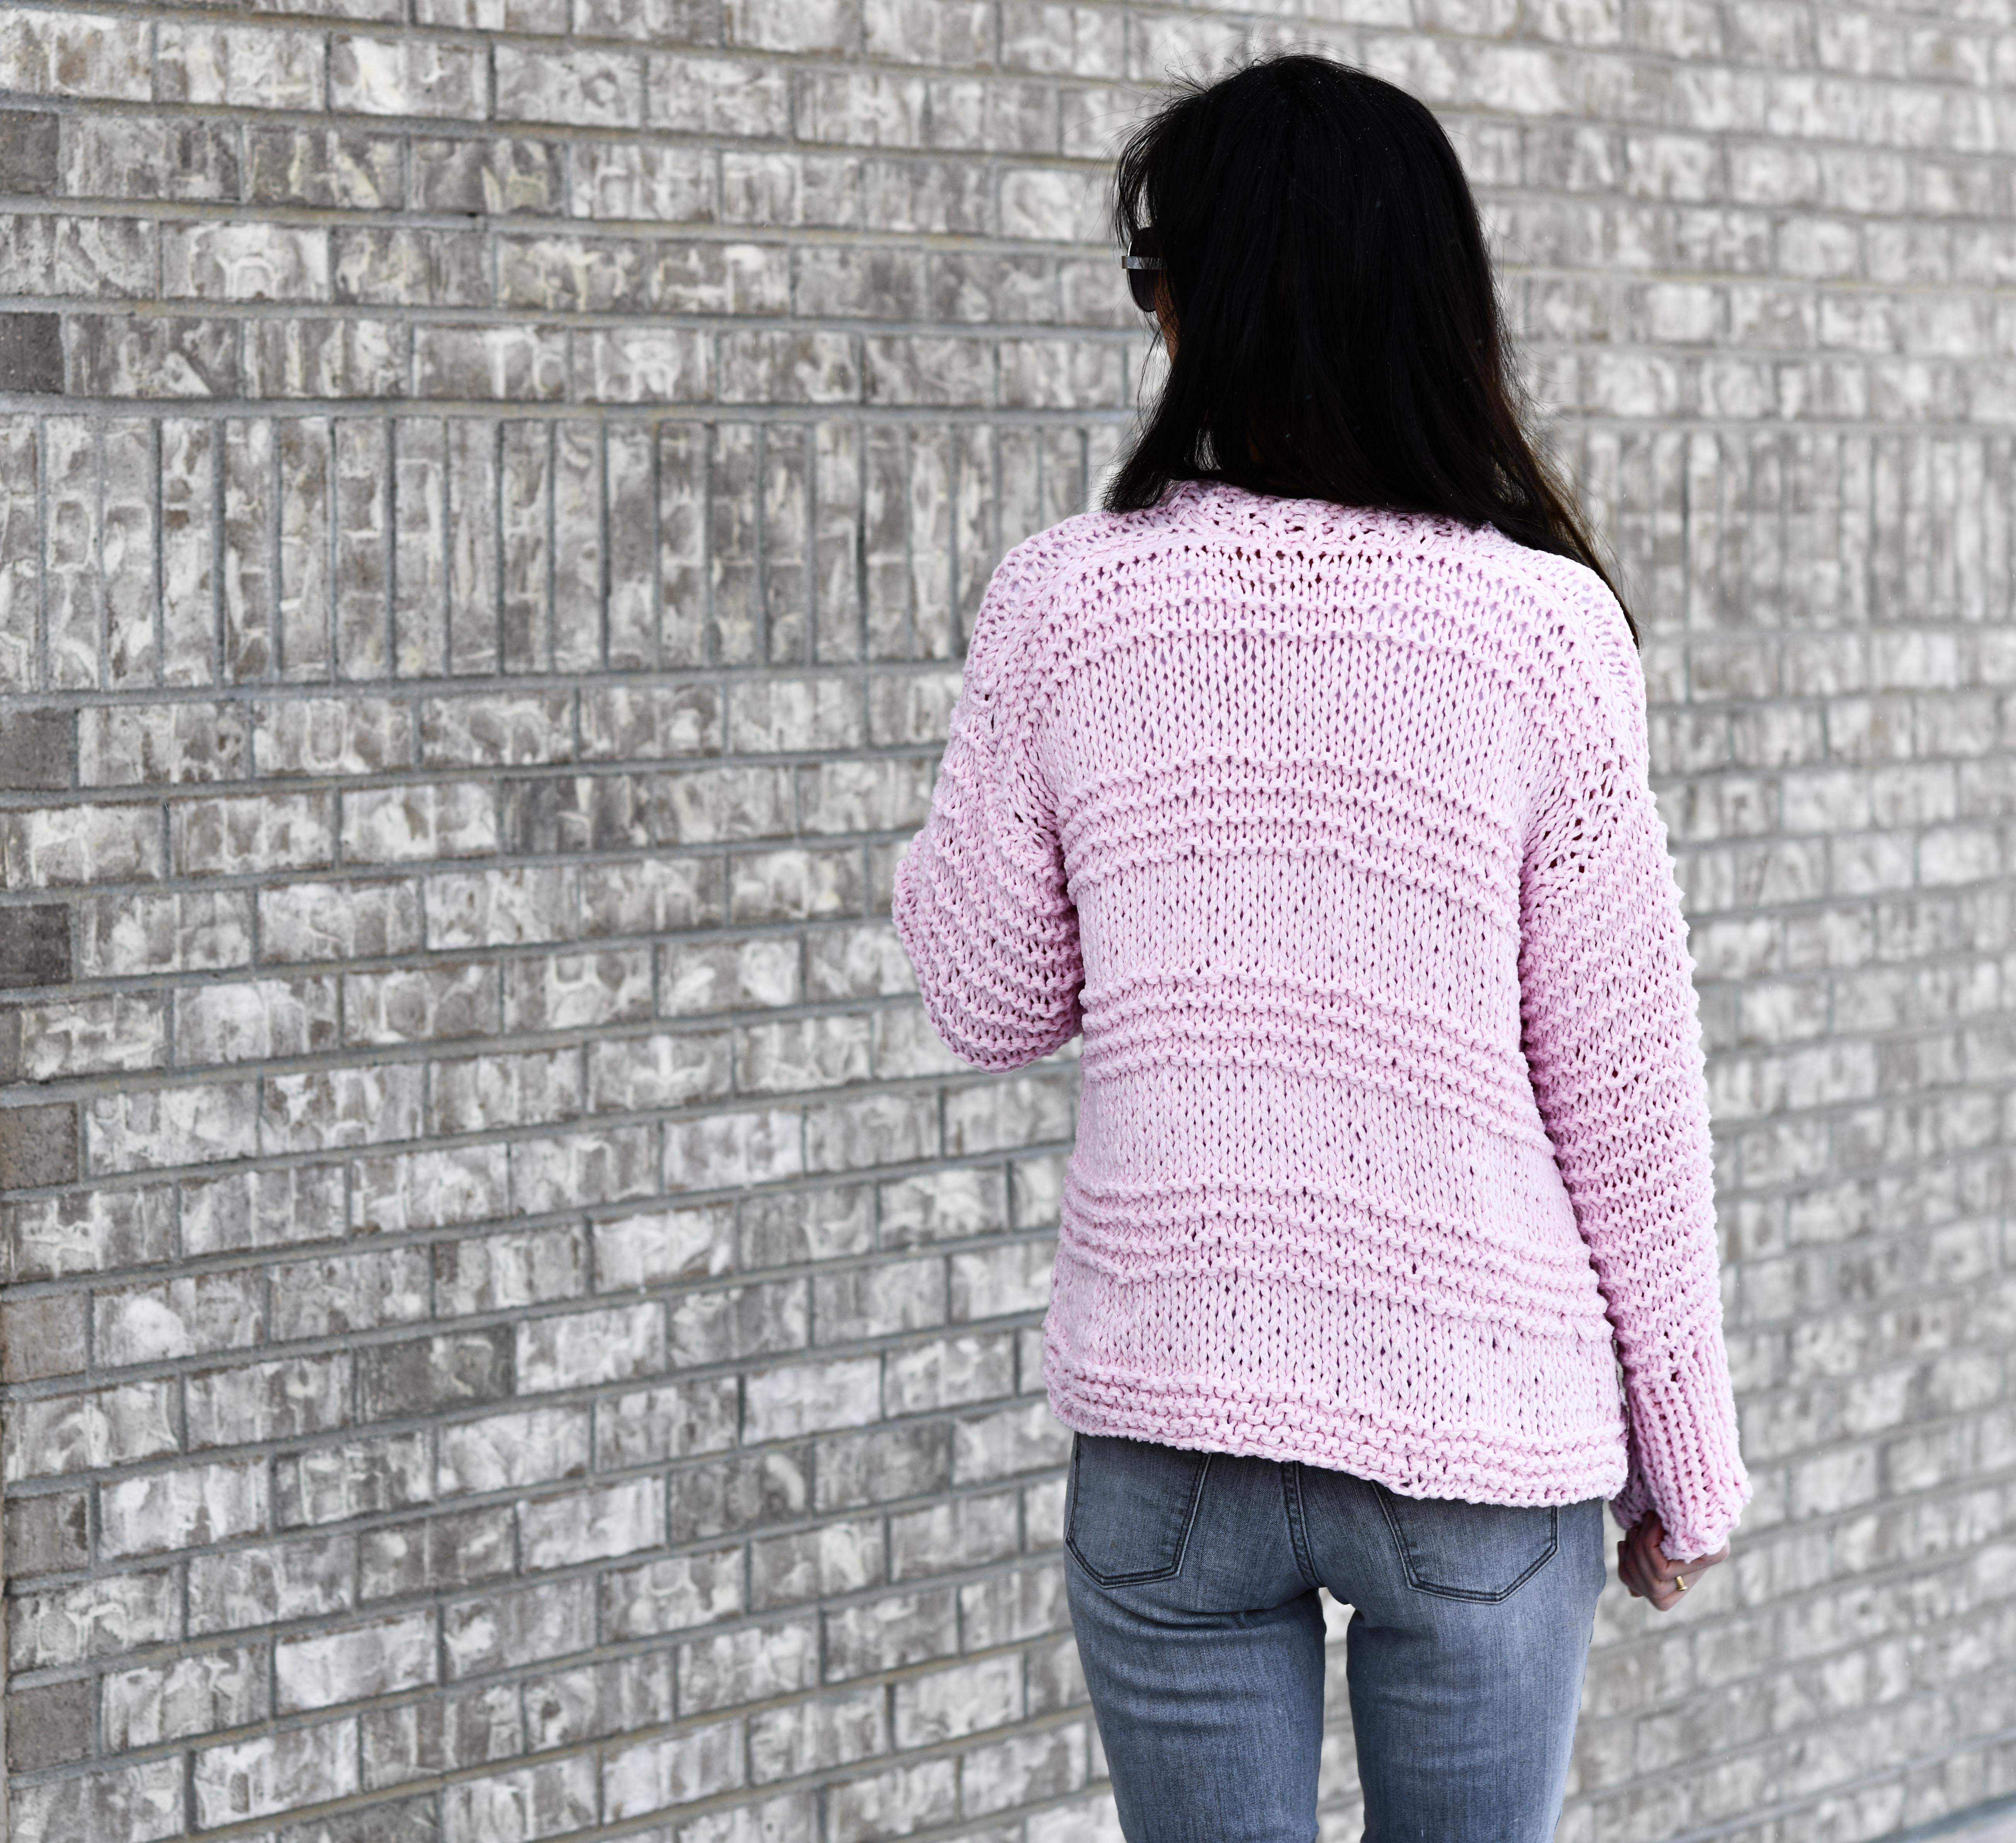 Cotton Candy Easy Knit Cardigan Pattern – Mama In A Stitch